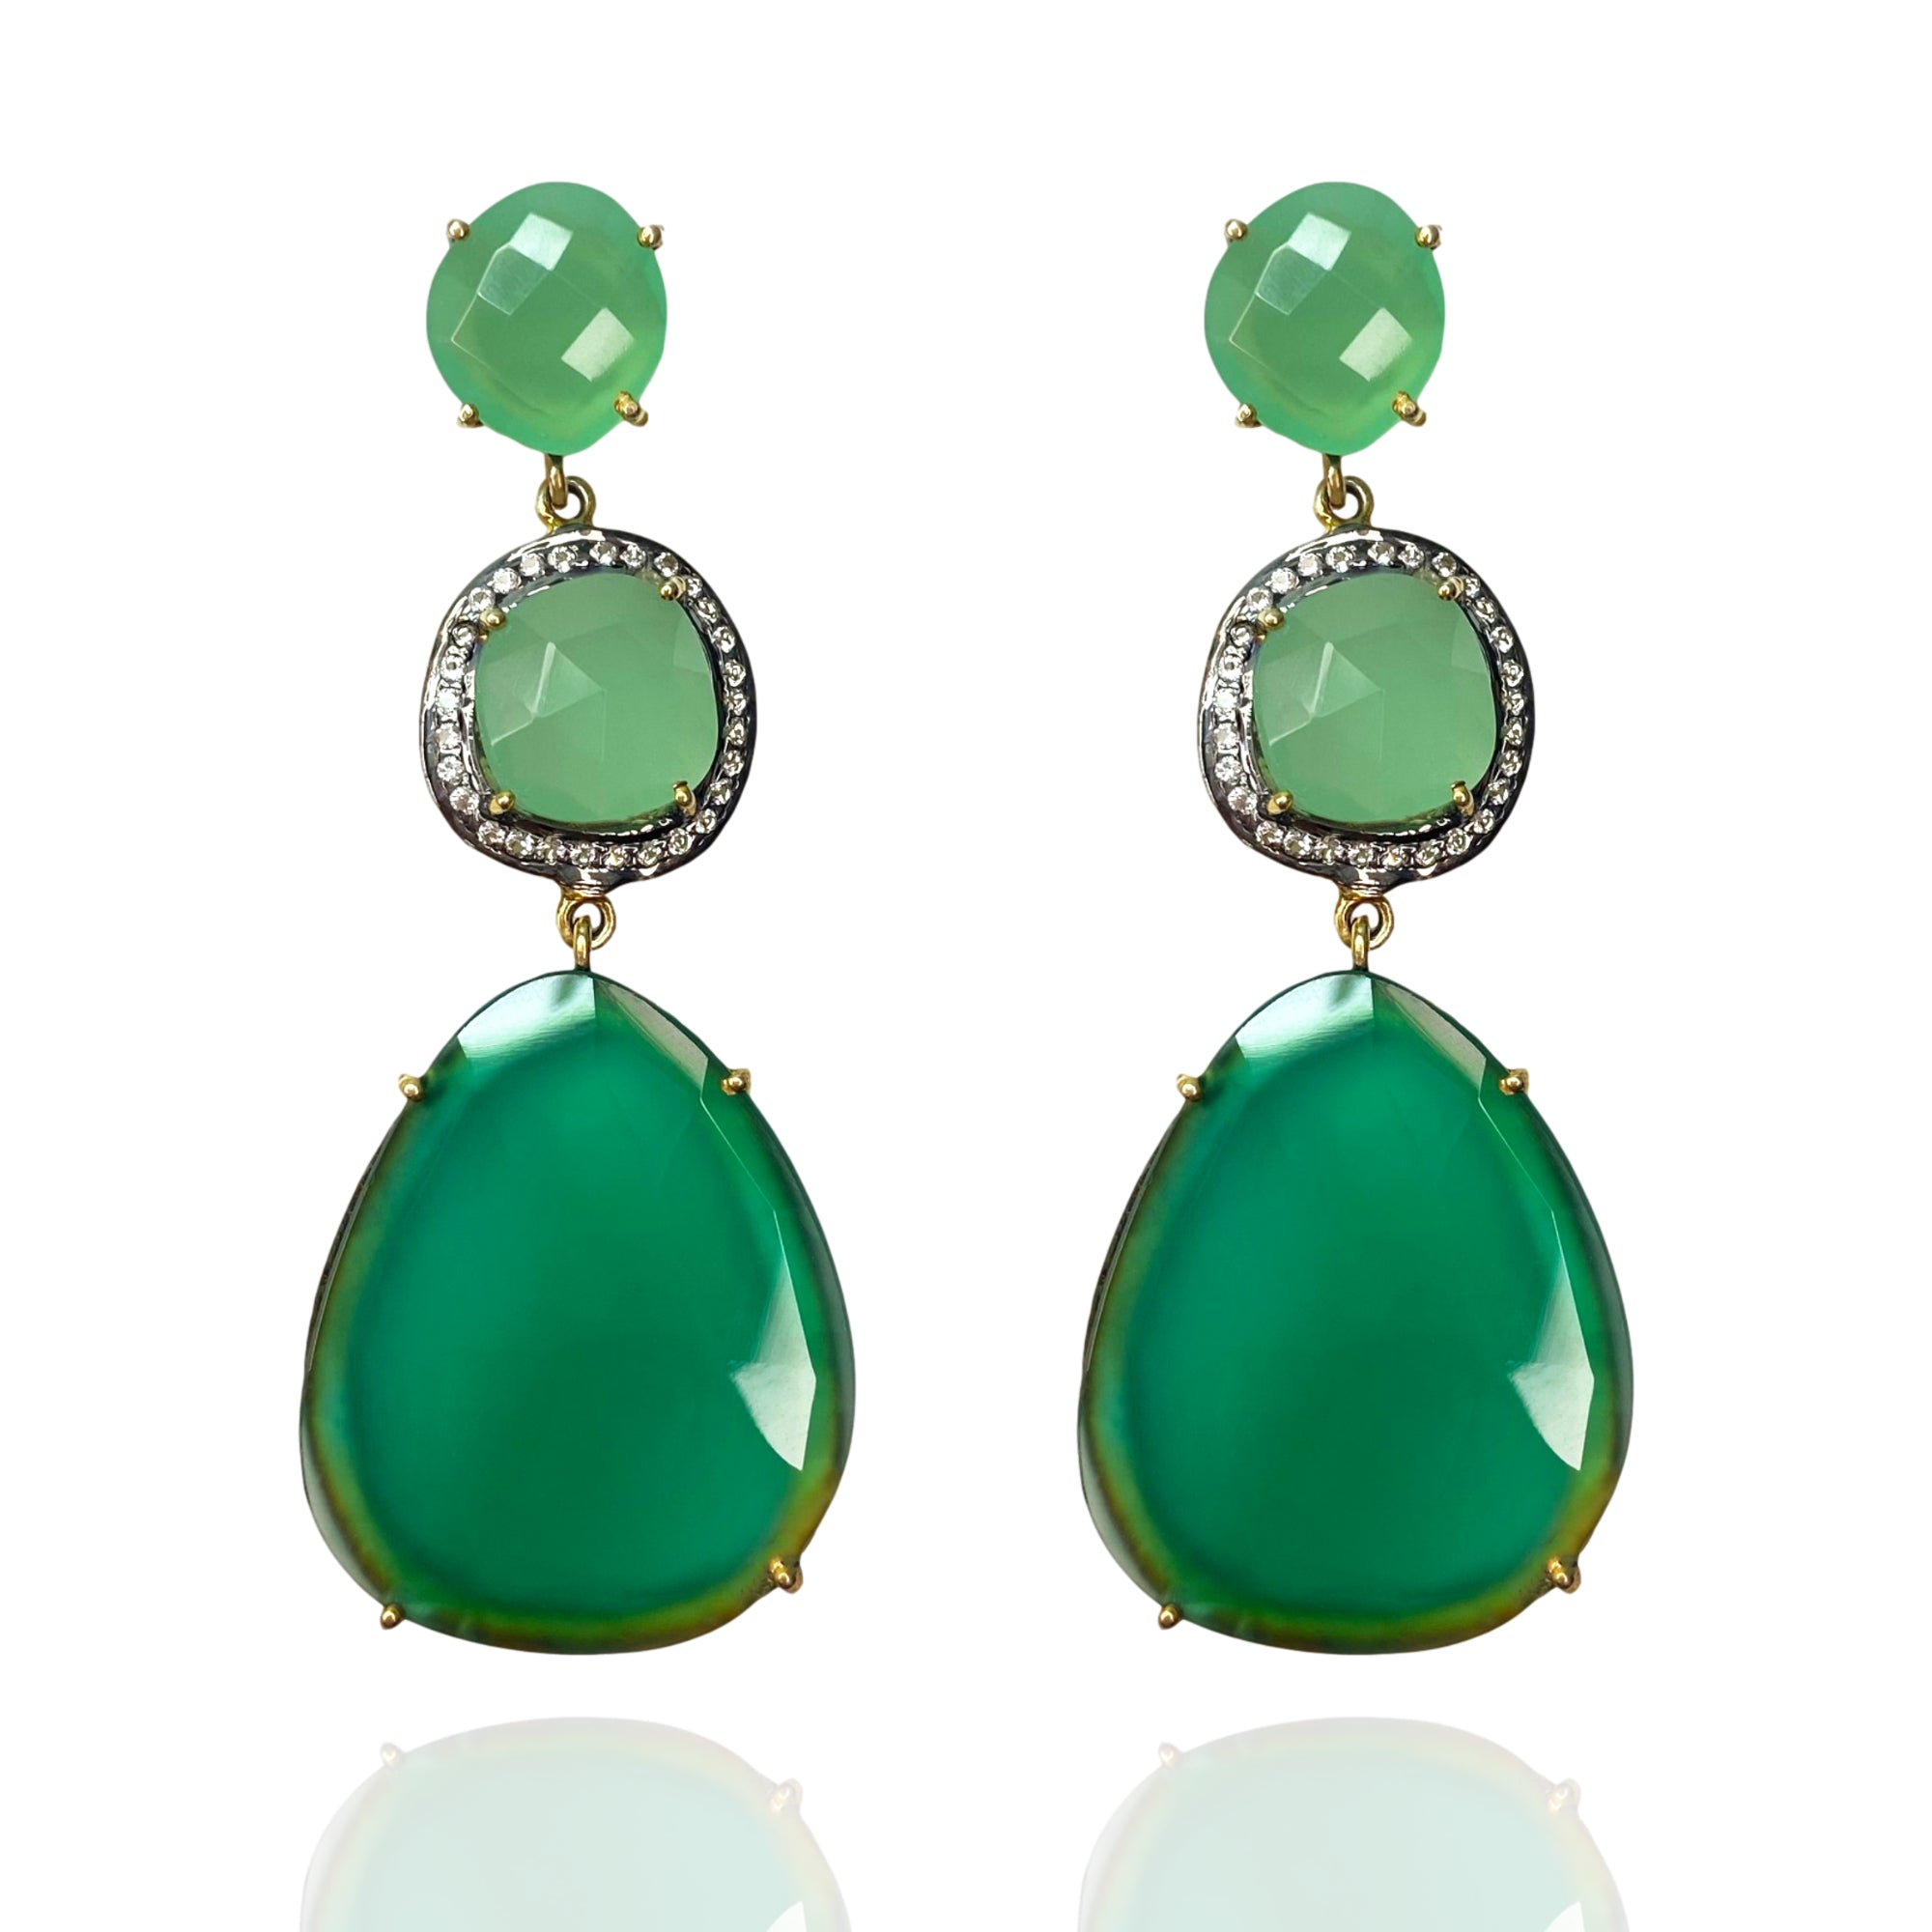 Tivoli Grand Tour Triple Earring